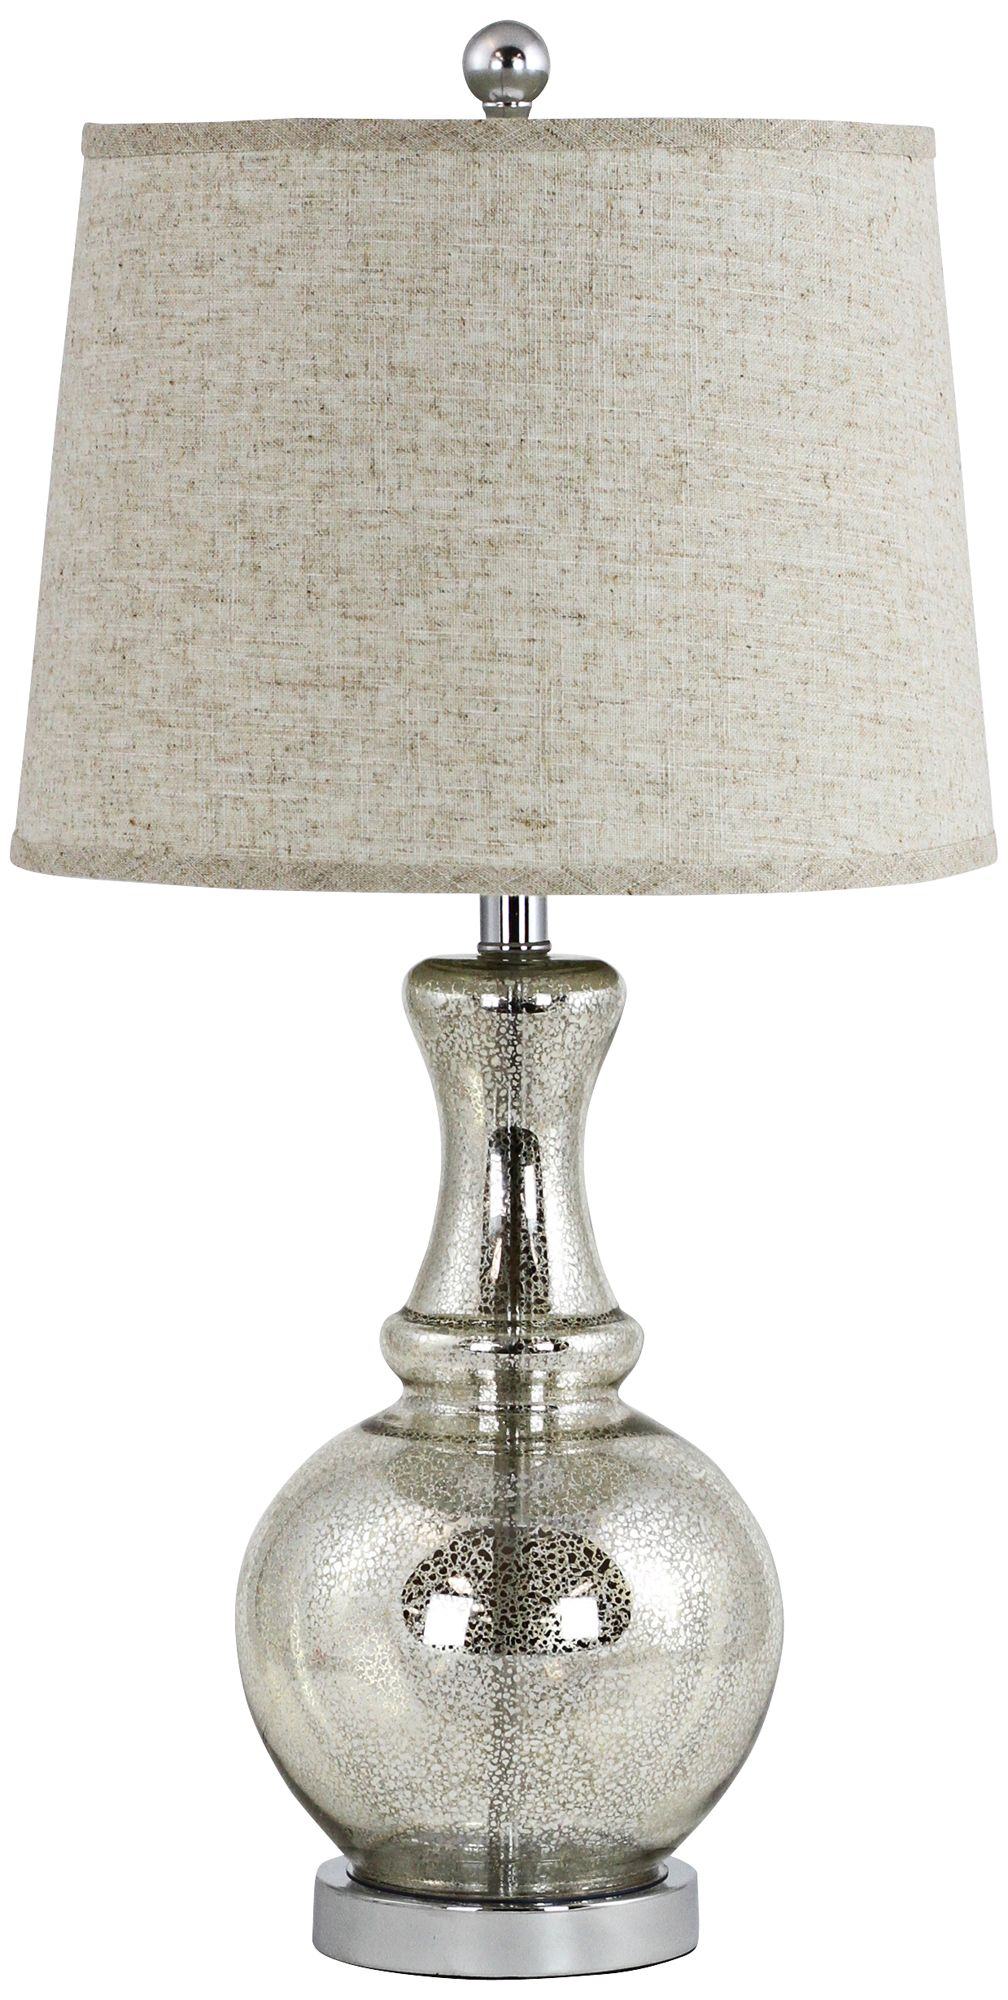 Carly Antique Mercury Glass Vase Table Lamp